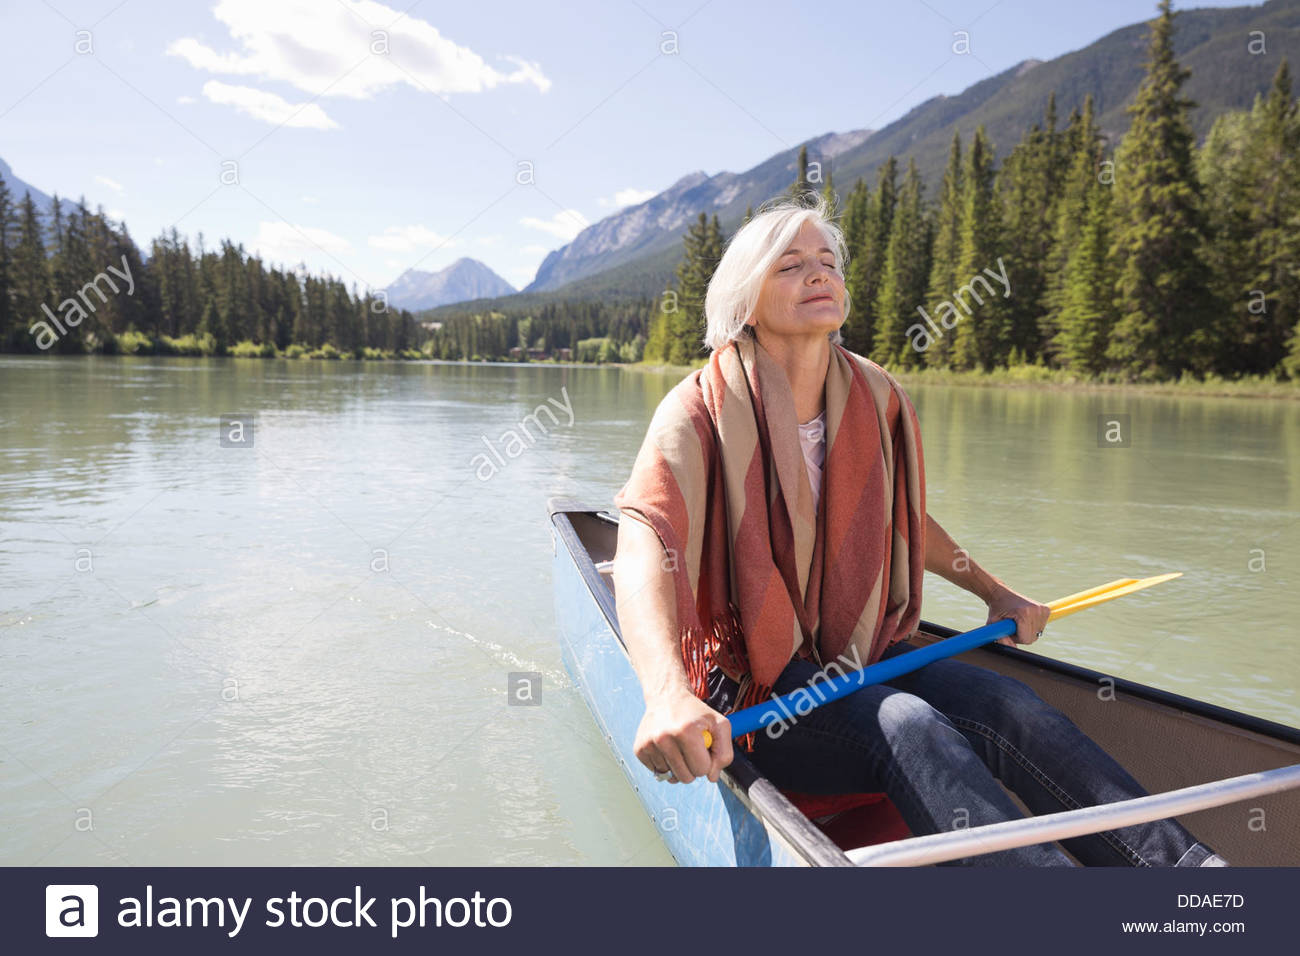 Mature woman relaxing on canoe ride - Stock Image